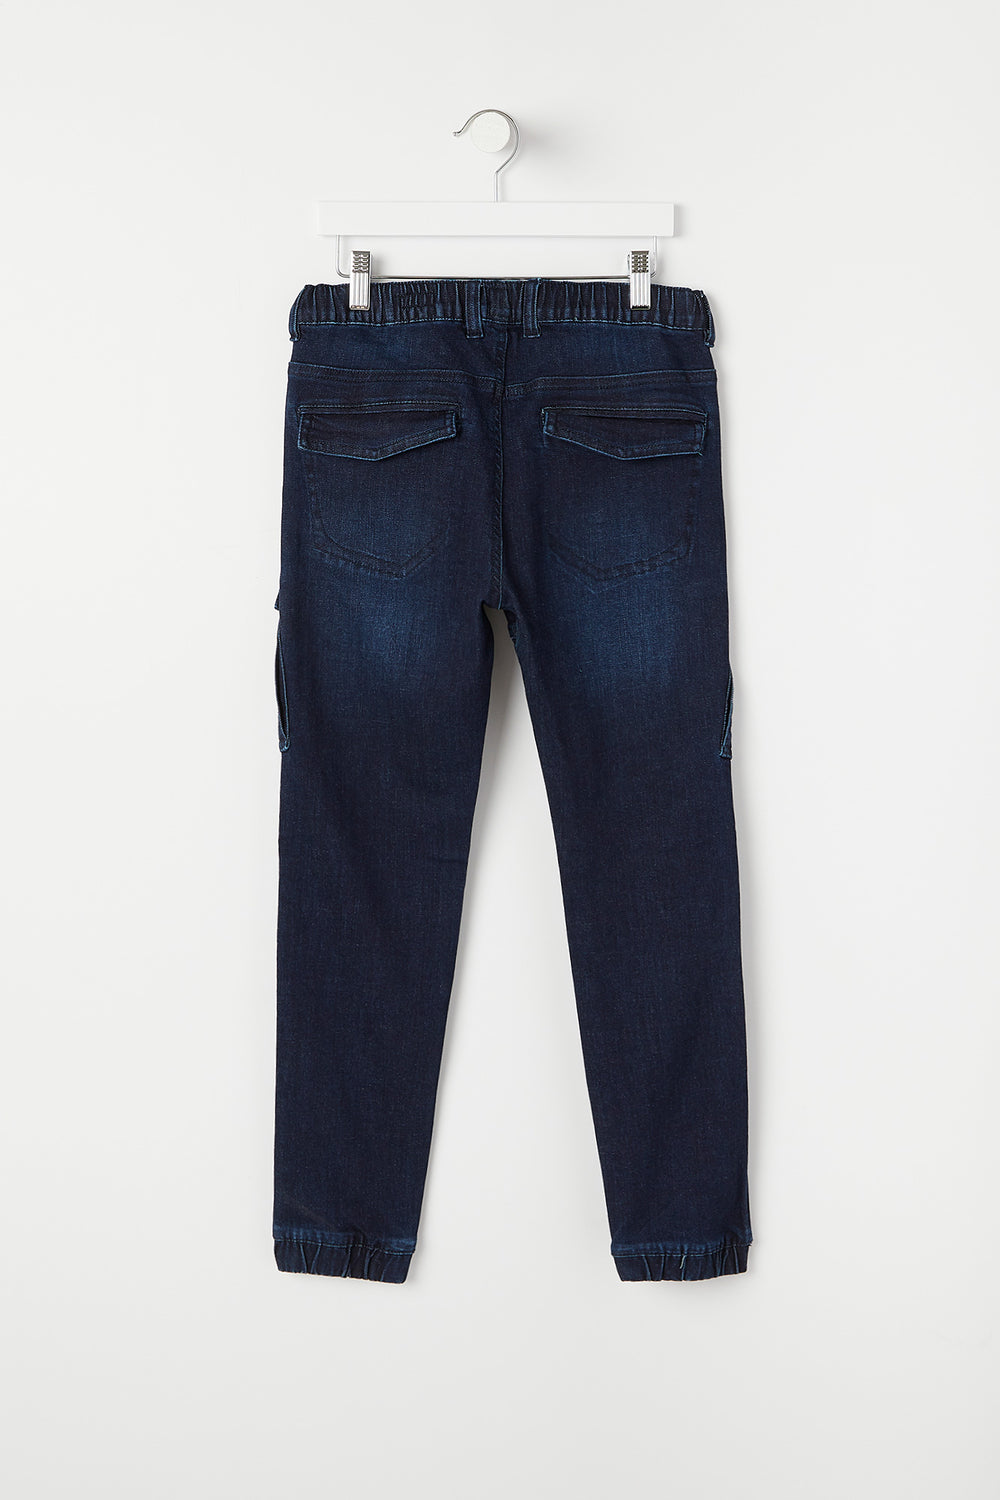 Youth Dark Wash Denim Jogger Dark Blue